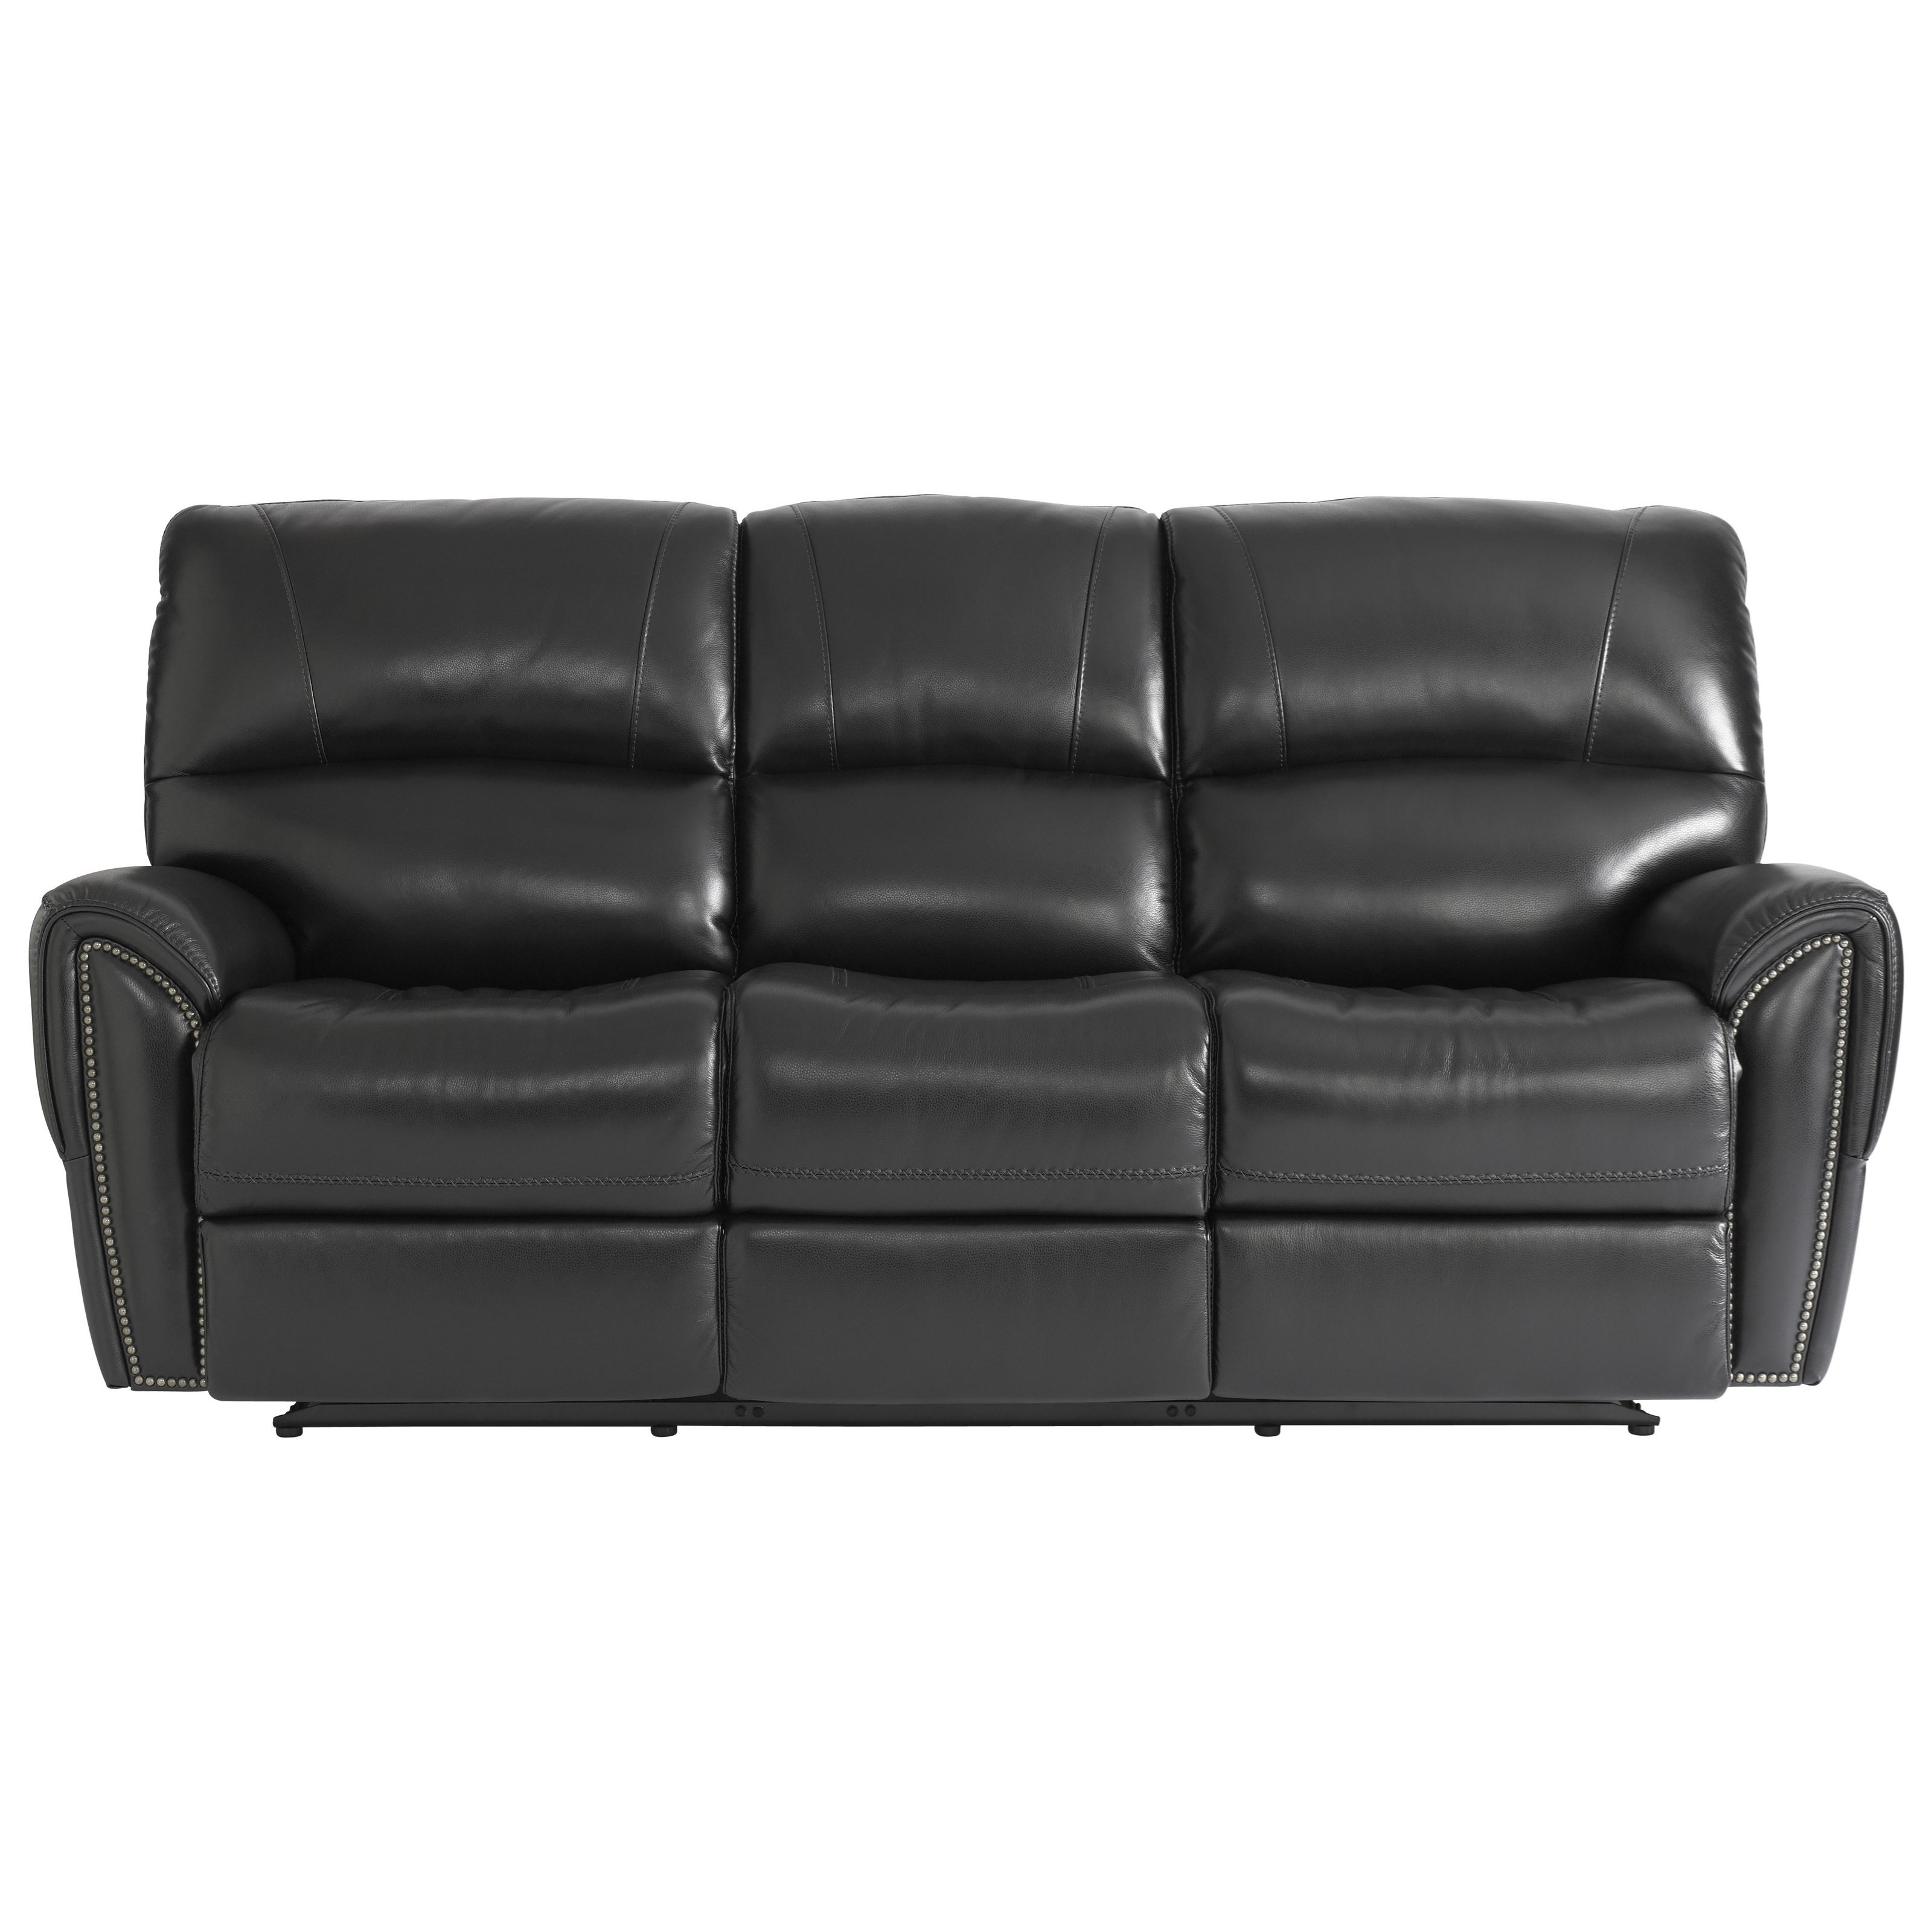 Ashley Furniture Horseheads Ny: Bassett Manchester Motion Sofa With Power